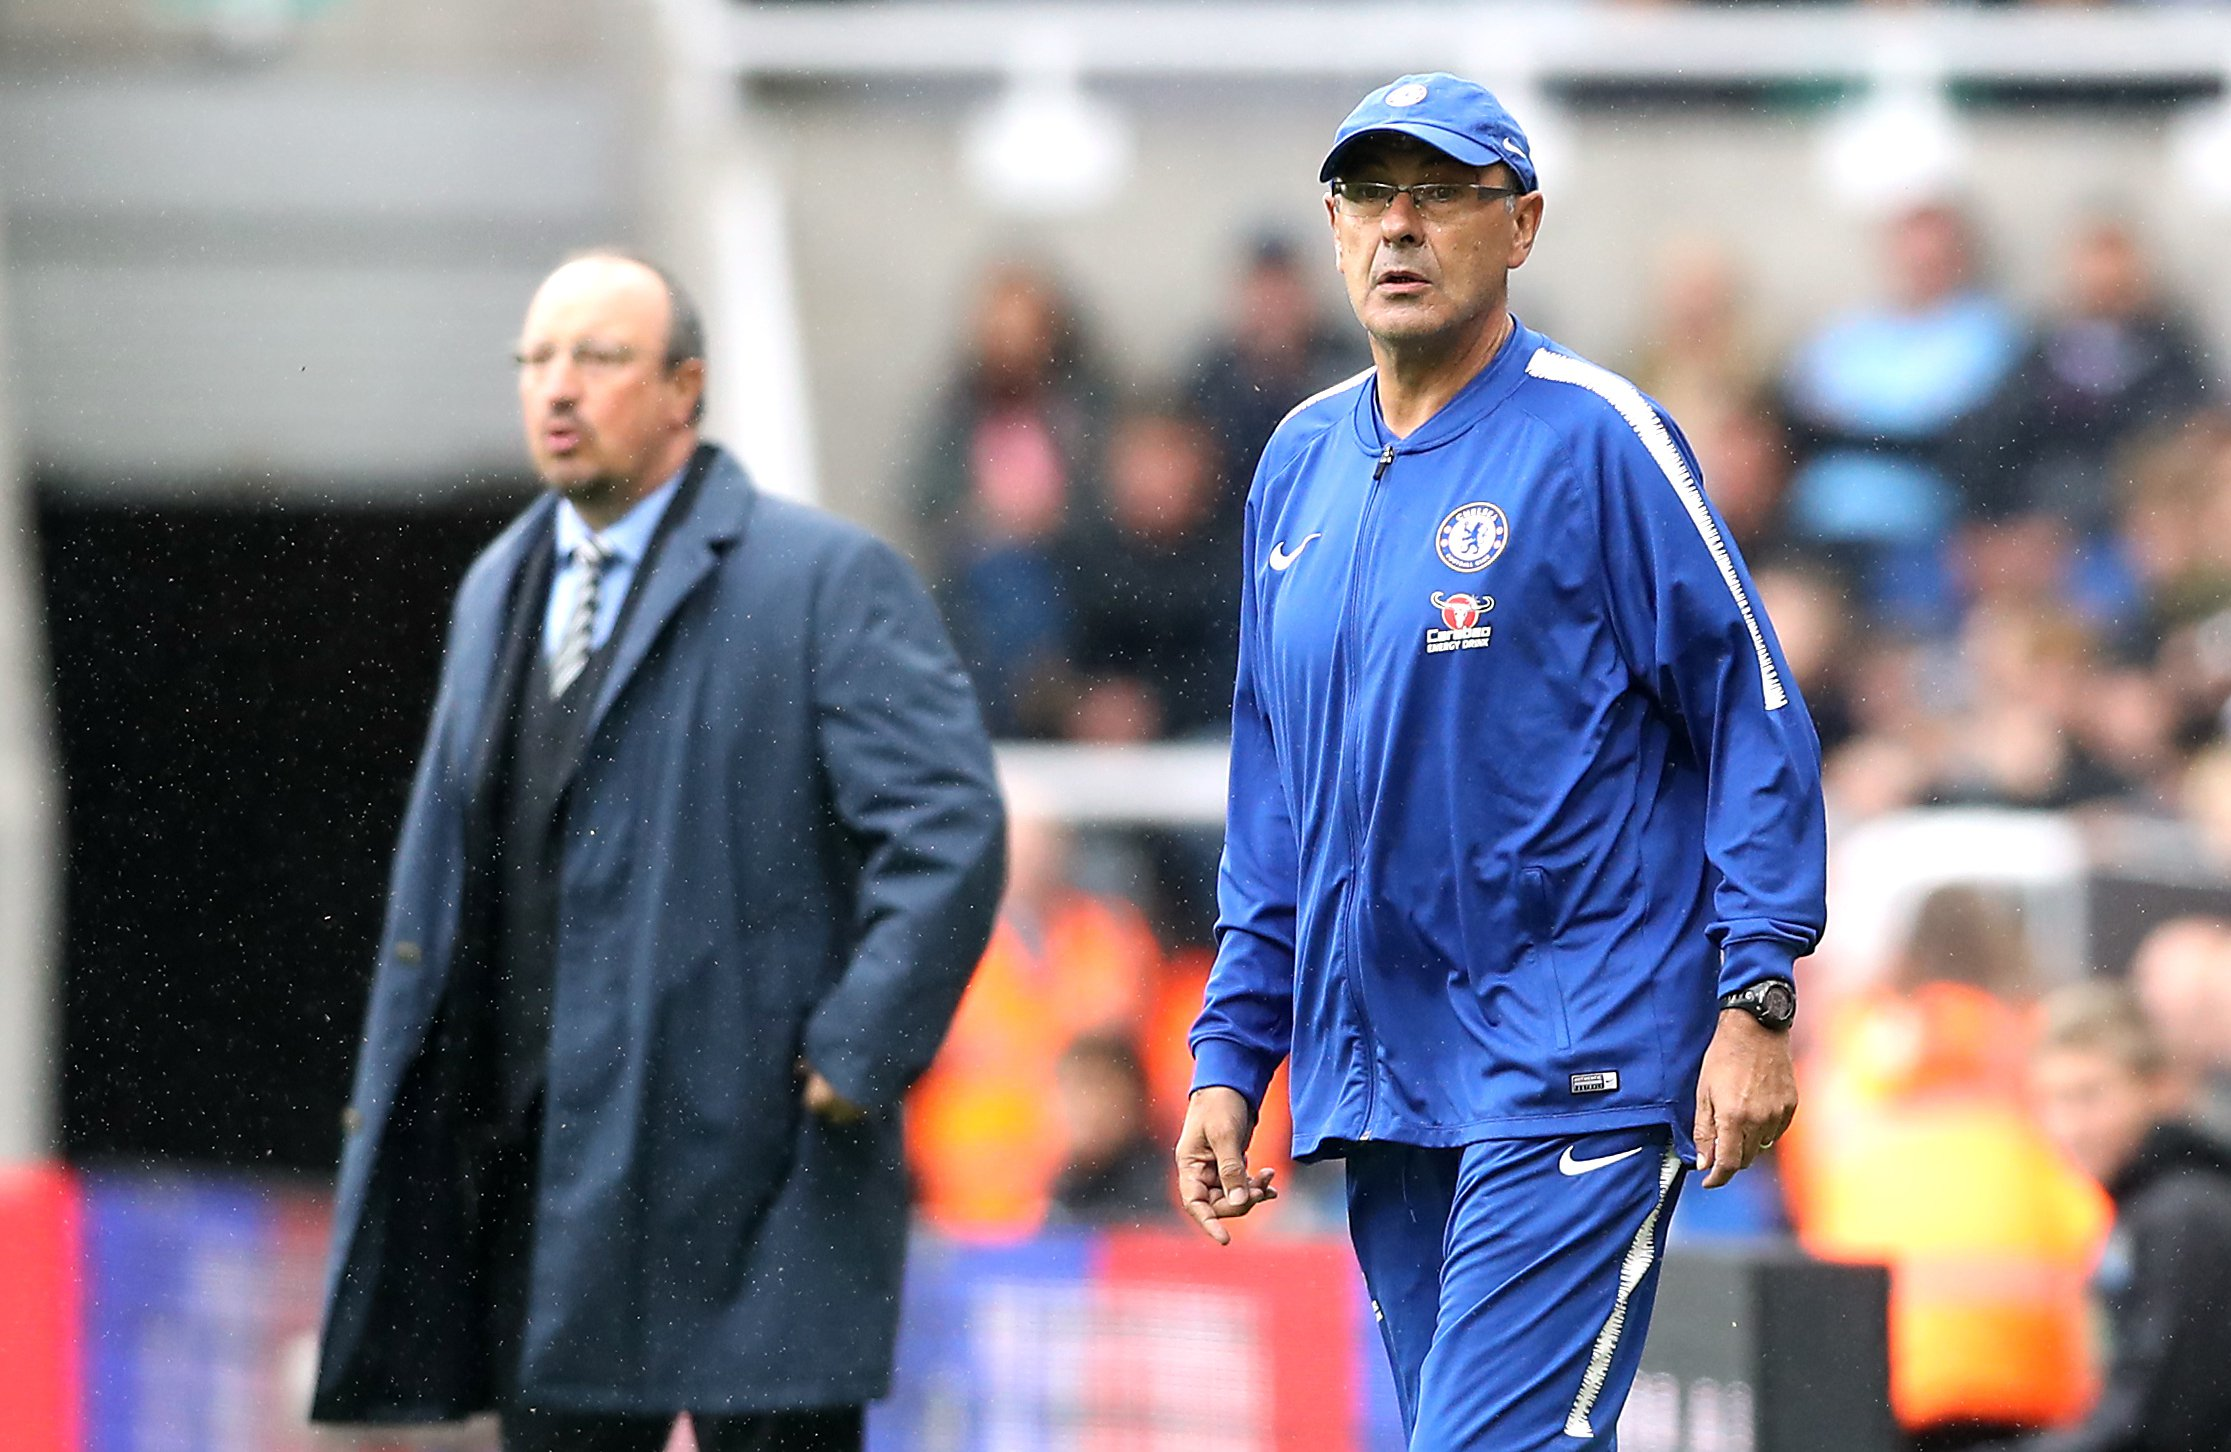 """Chelsea manager Maurizio Sarri (right) and Newcastle United manager Rafael Benitez during the Premier League match at St James' Park, Newcastle. PRESS ASSOCIATION Photo. Picture date: Sunday August 26, 2018. See PA story SOCCER Newcastle. Photo credit should read: Owen Humphreys/PA Wire. RESTRICTIONS: EDITORIAL USE ONLY No use with unauthorised audio, video, data, fixture lists, club/league logos or """"live"""" services. Online in-match use limited to 120 images, no video emulation. No use in betting, games or single club/league/player publications."""